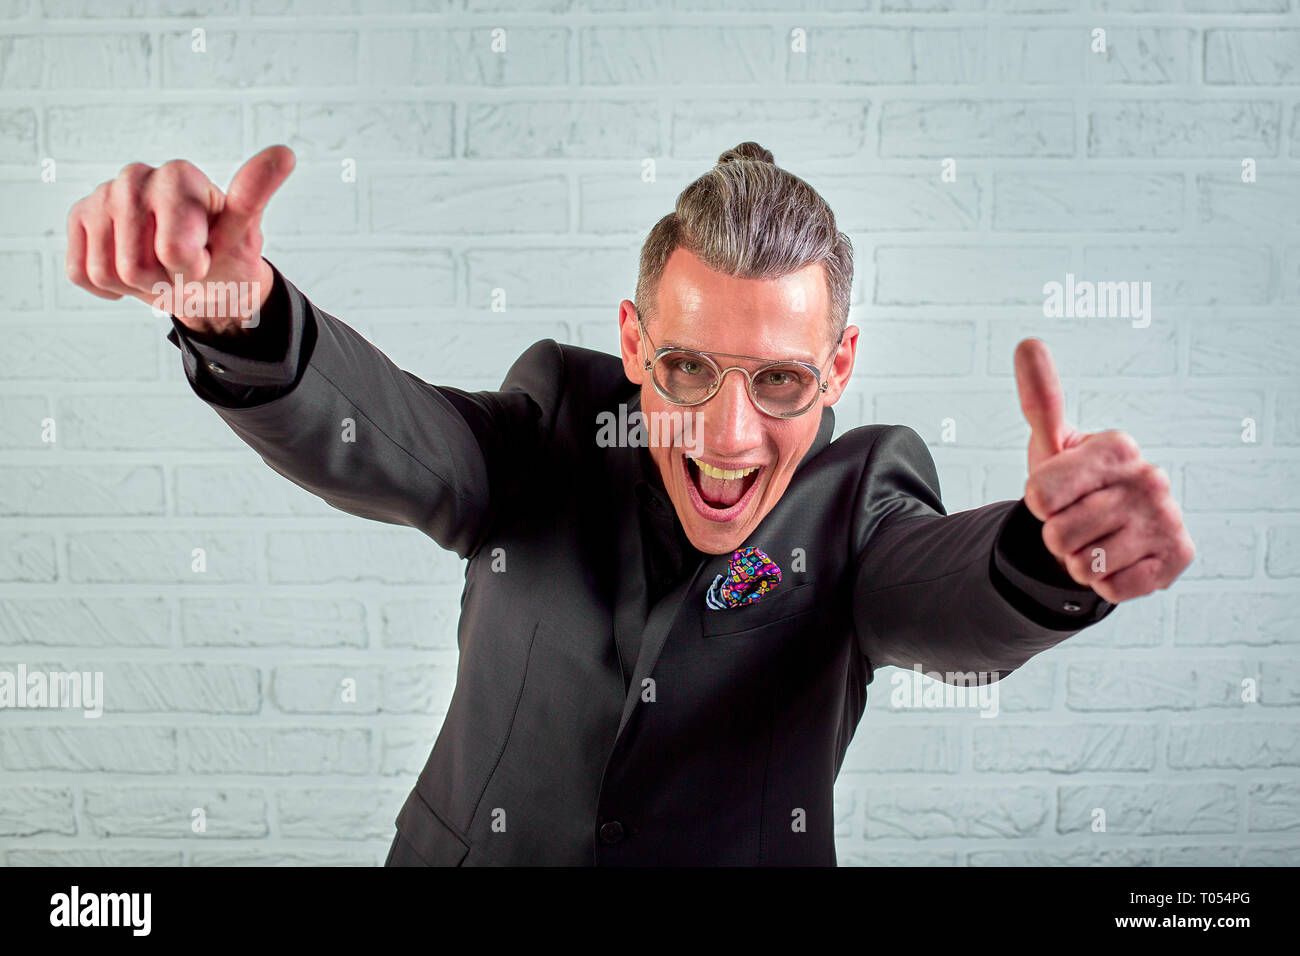 Positive businessman smiling looking at camera showing hand gesture thumbs up sign symbol - Stock Image